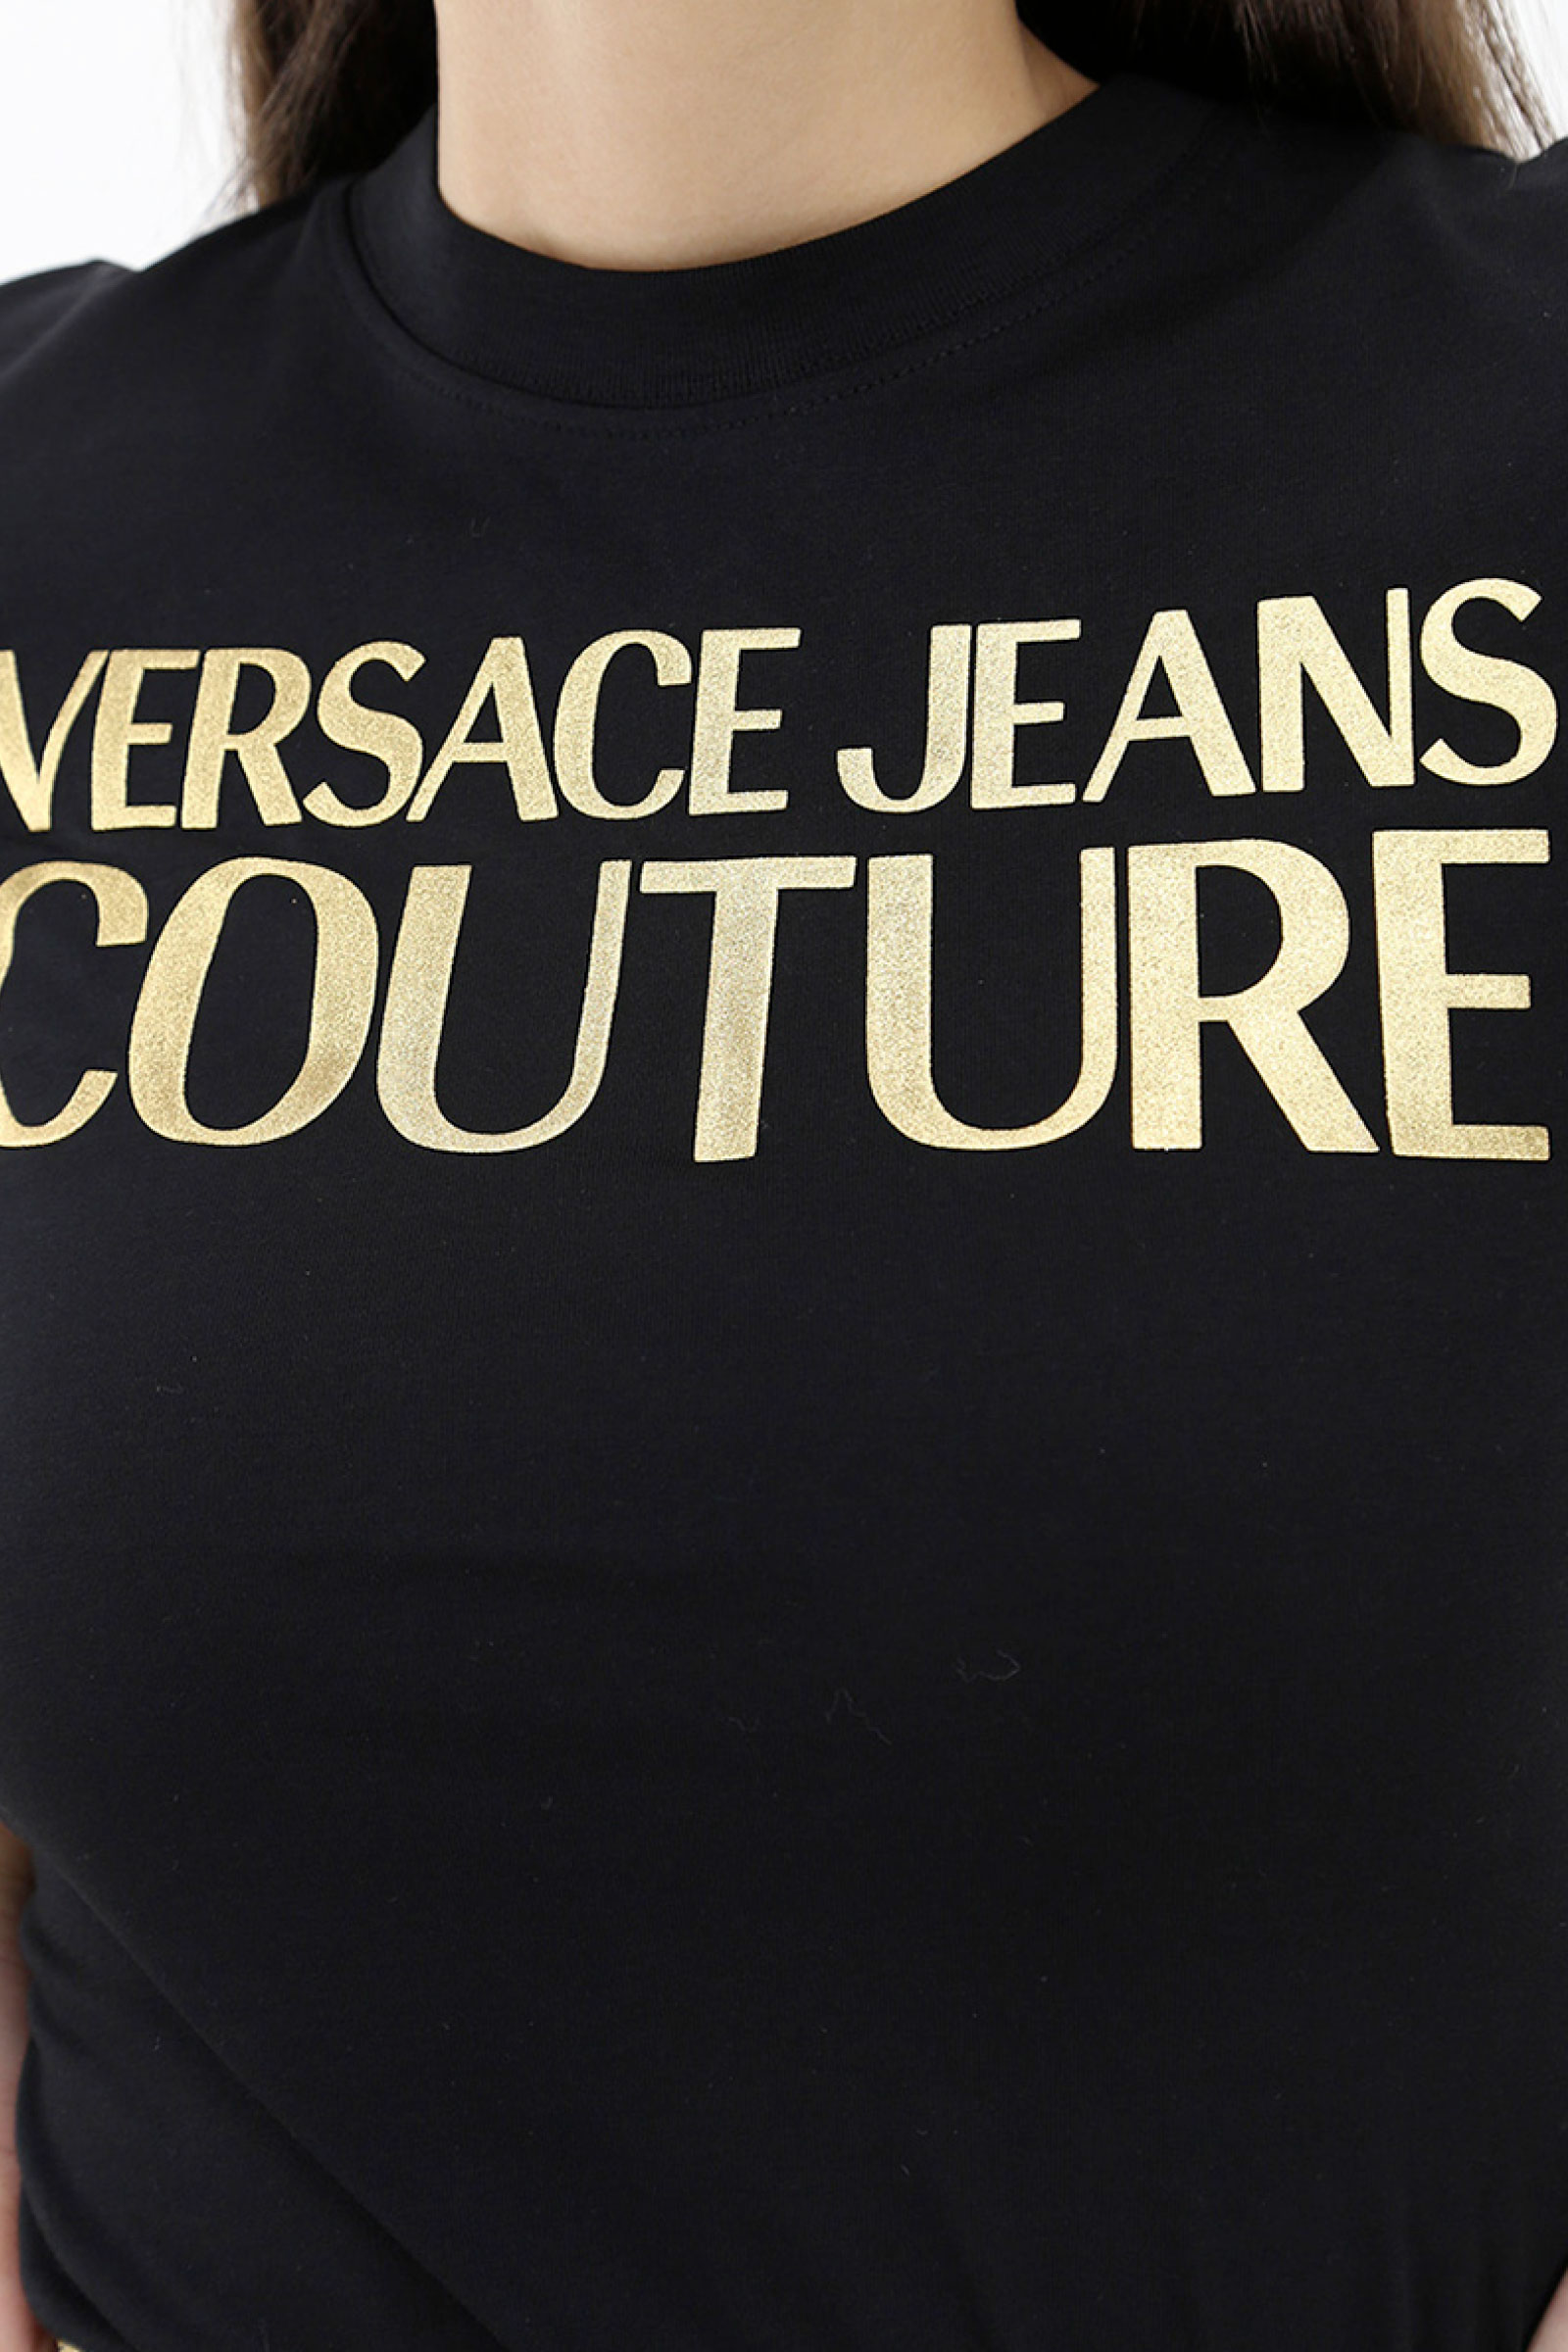 VERSACE JEANS COUTURE Women's T-Shirt VERSACE JEANS COUTURE | T-Shirt | B2HWA7TB30319K42